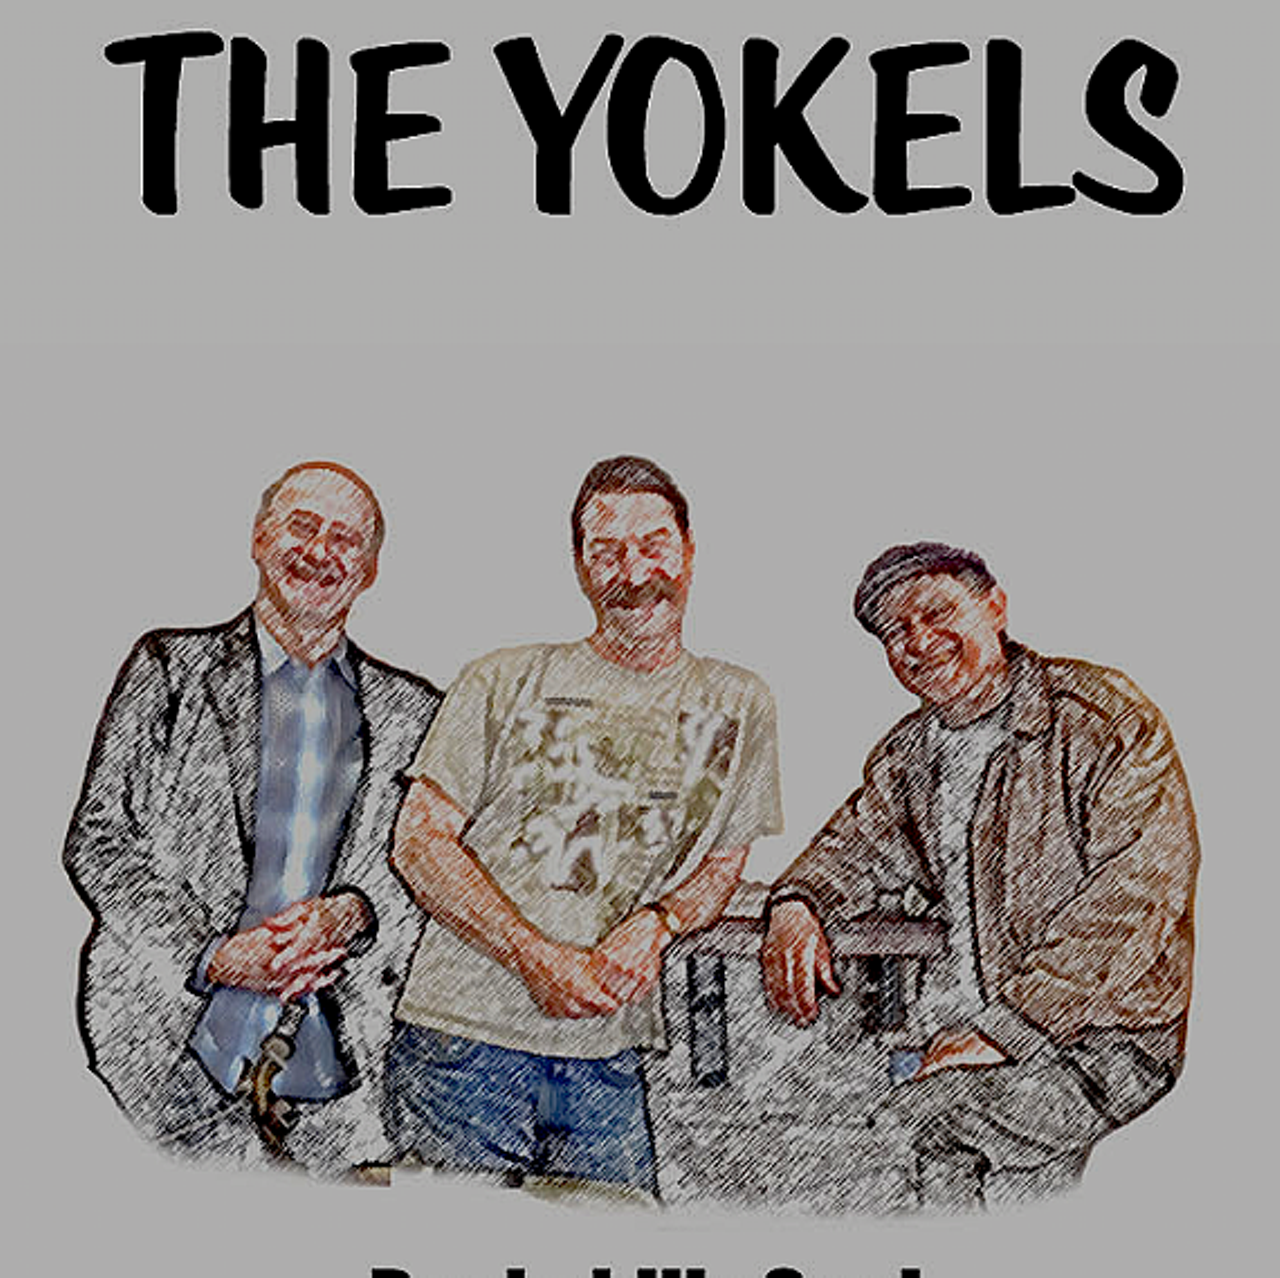 The yokels redwood curtain brewery tasting room live bands music the journal for Redwood room live music schedule